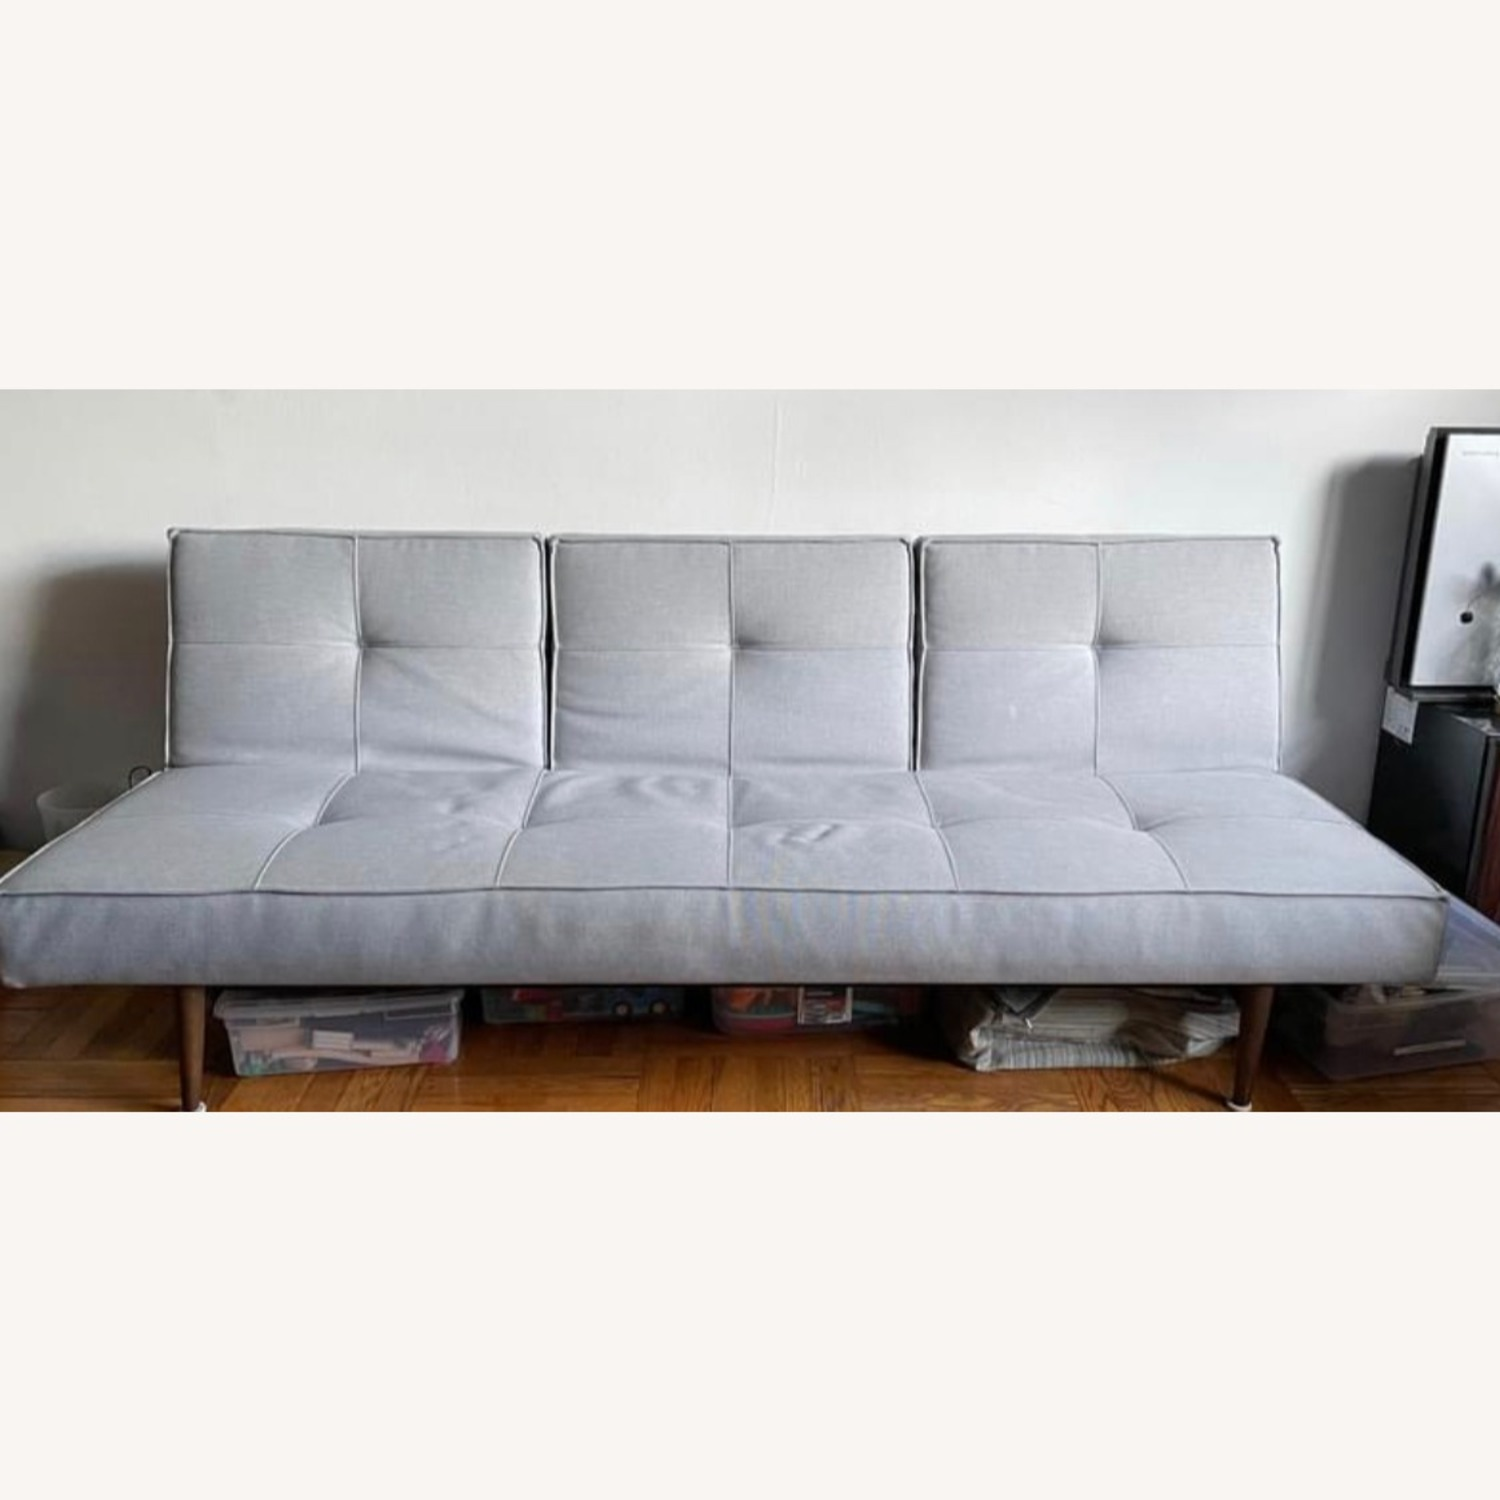 Room and Board Modern Fold Out Bed- Sofa - image-3